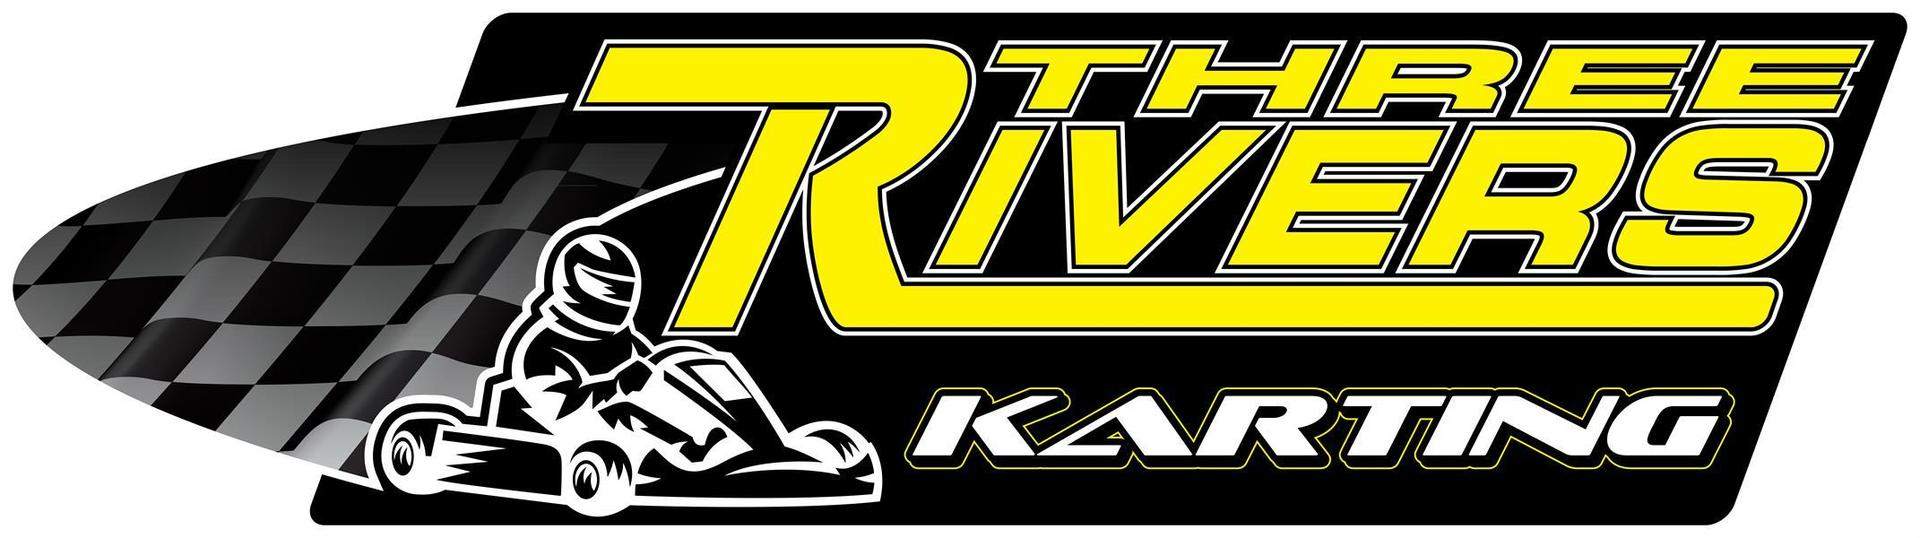 Three Rivers Karting